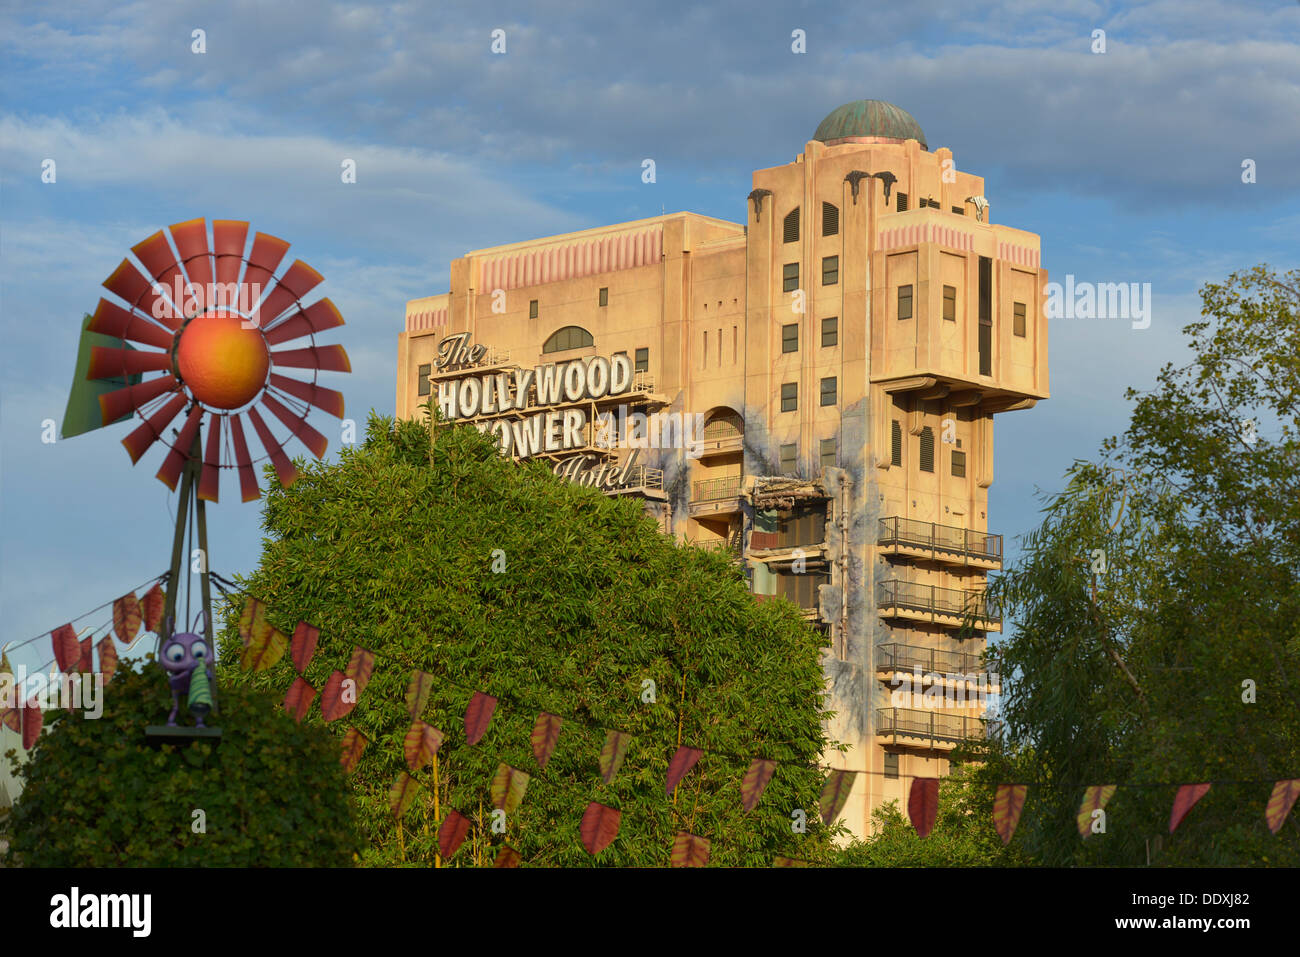 Disneyland, Hollywood Tower Hotel, California Adventure Park, Anaheim - Stock Image